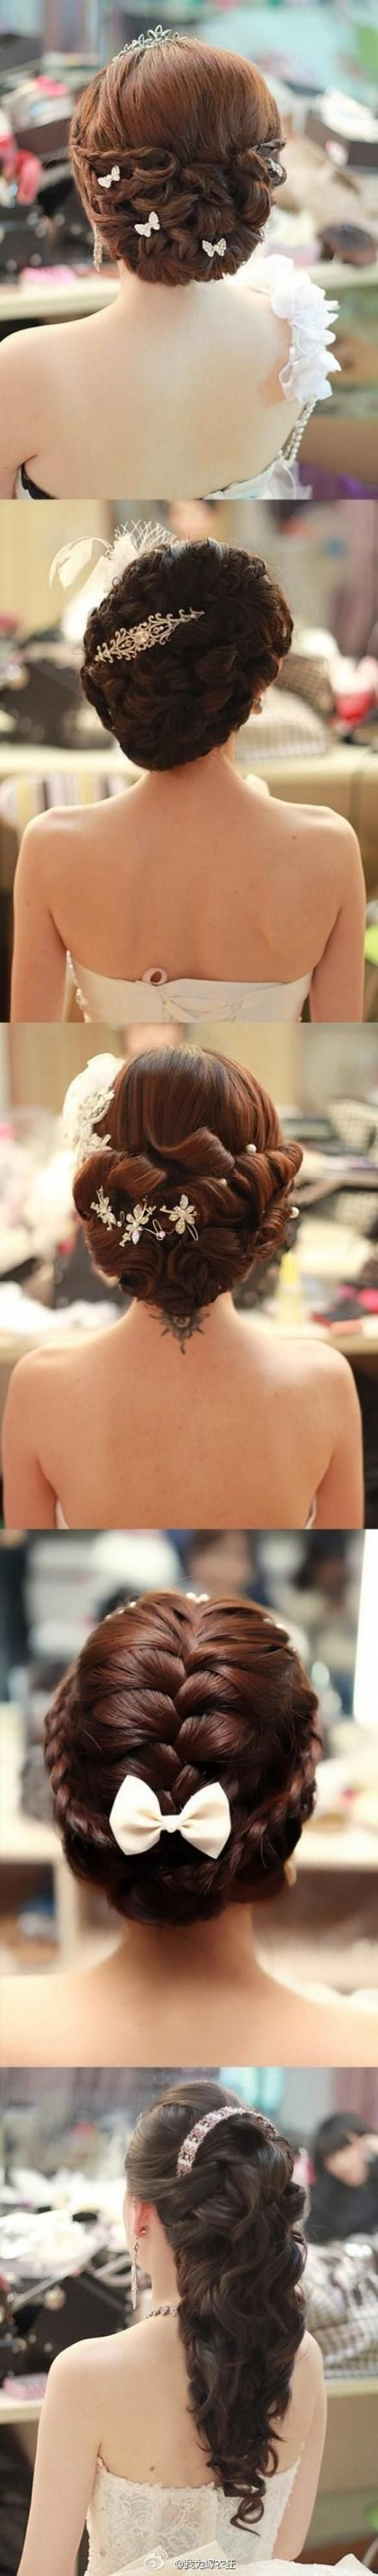 Beautiful wedding hairstyles for medium to long hair